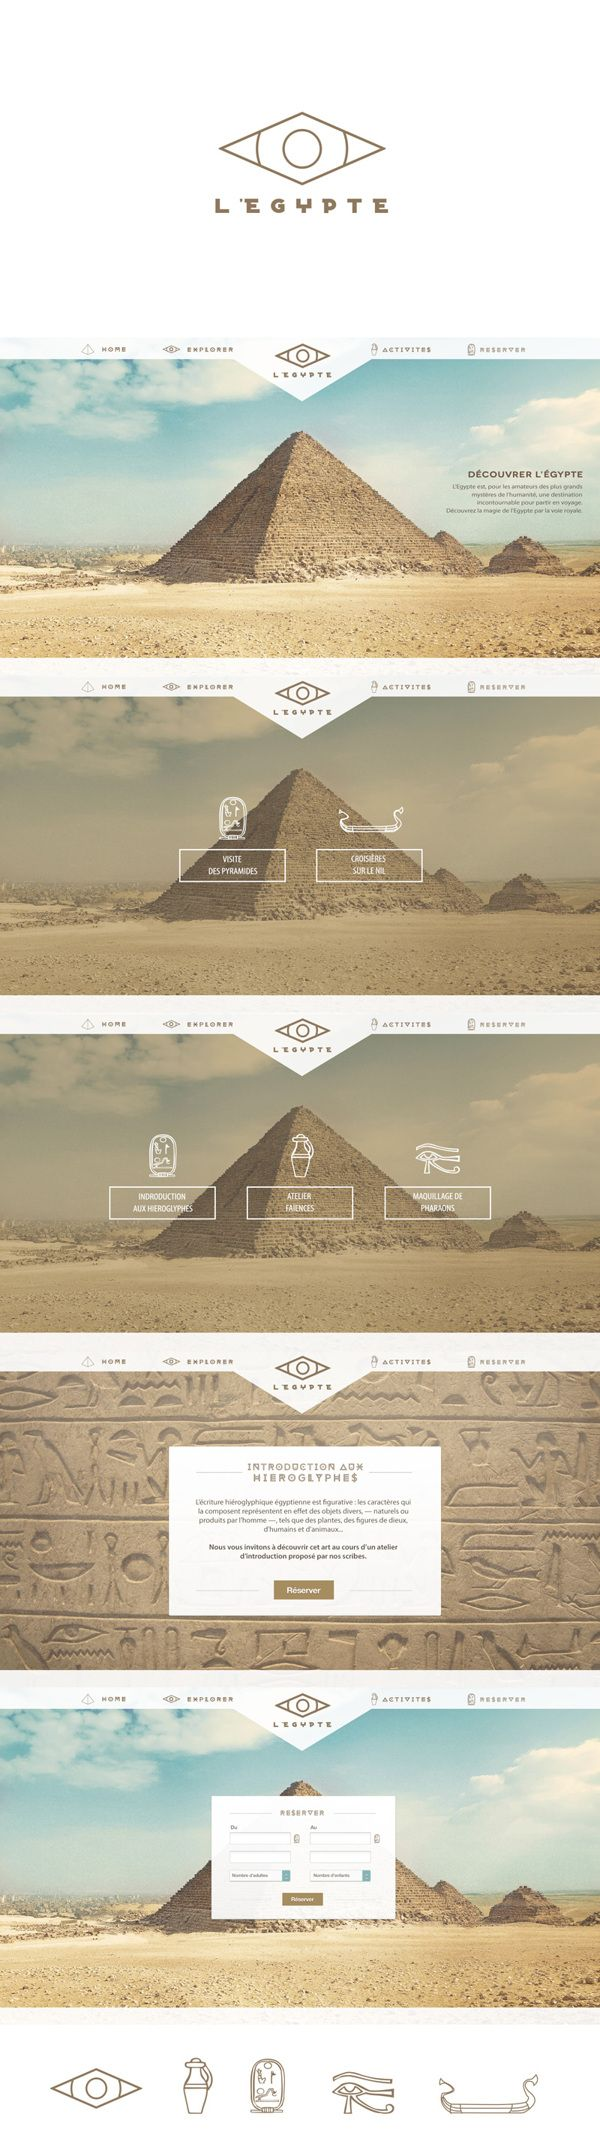 Egypt on Behance